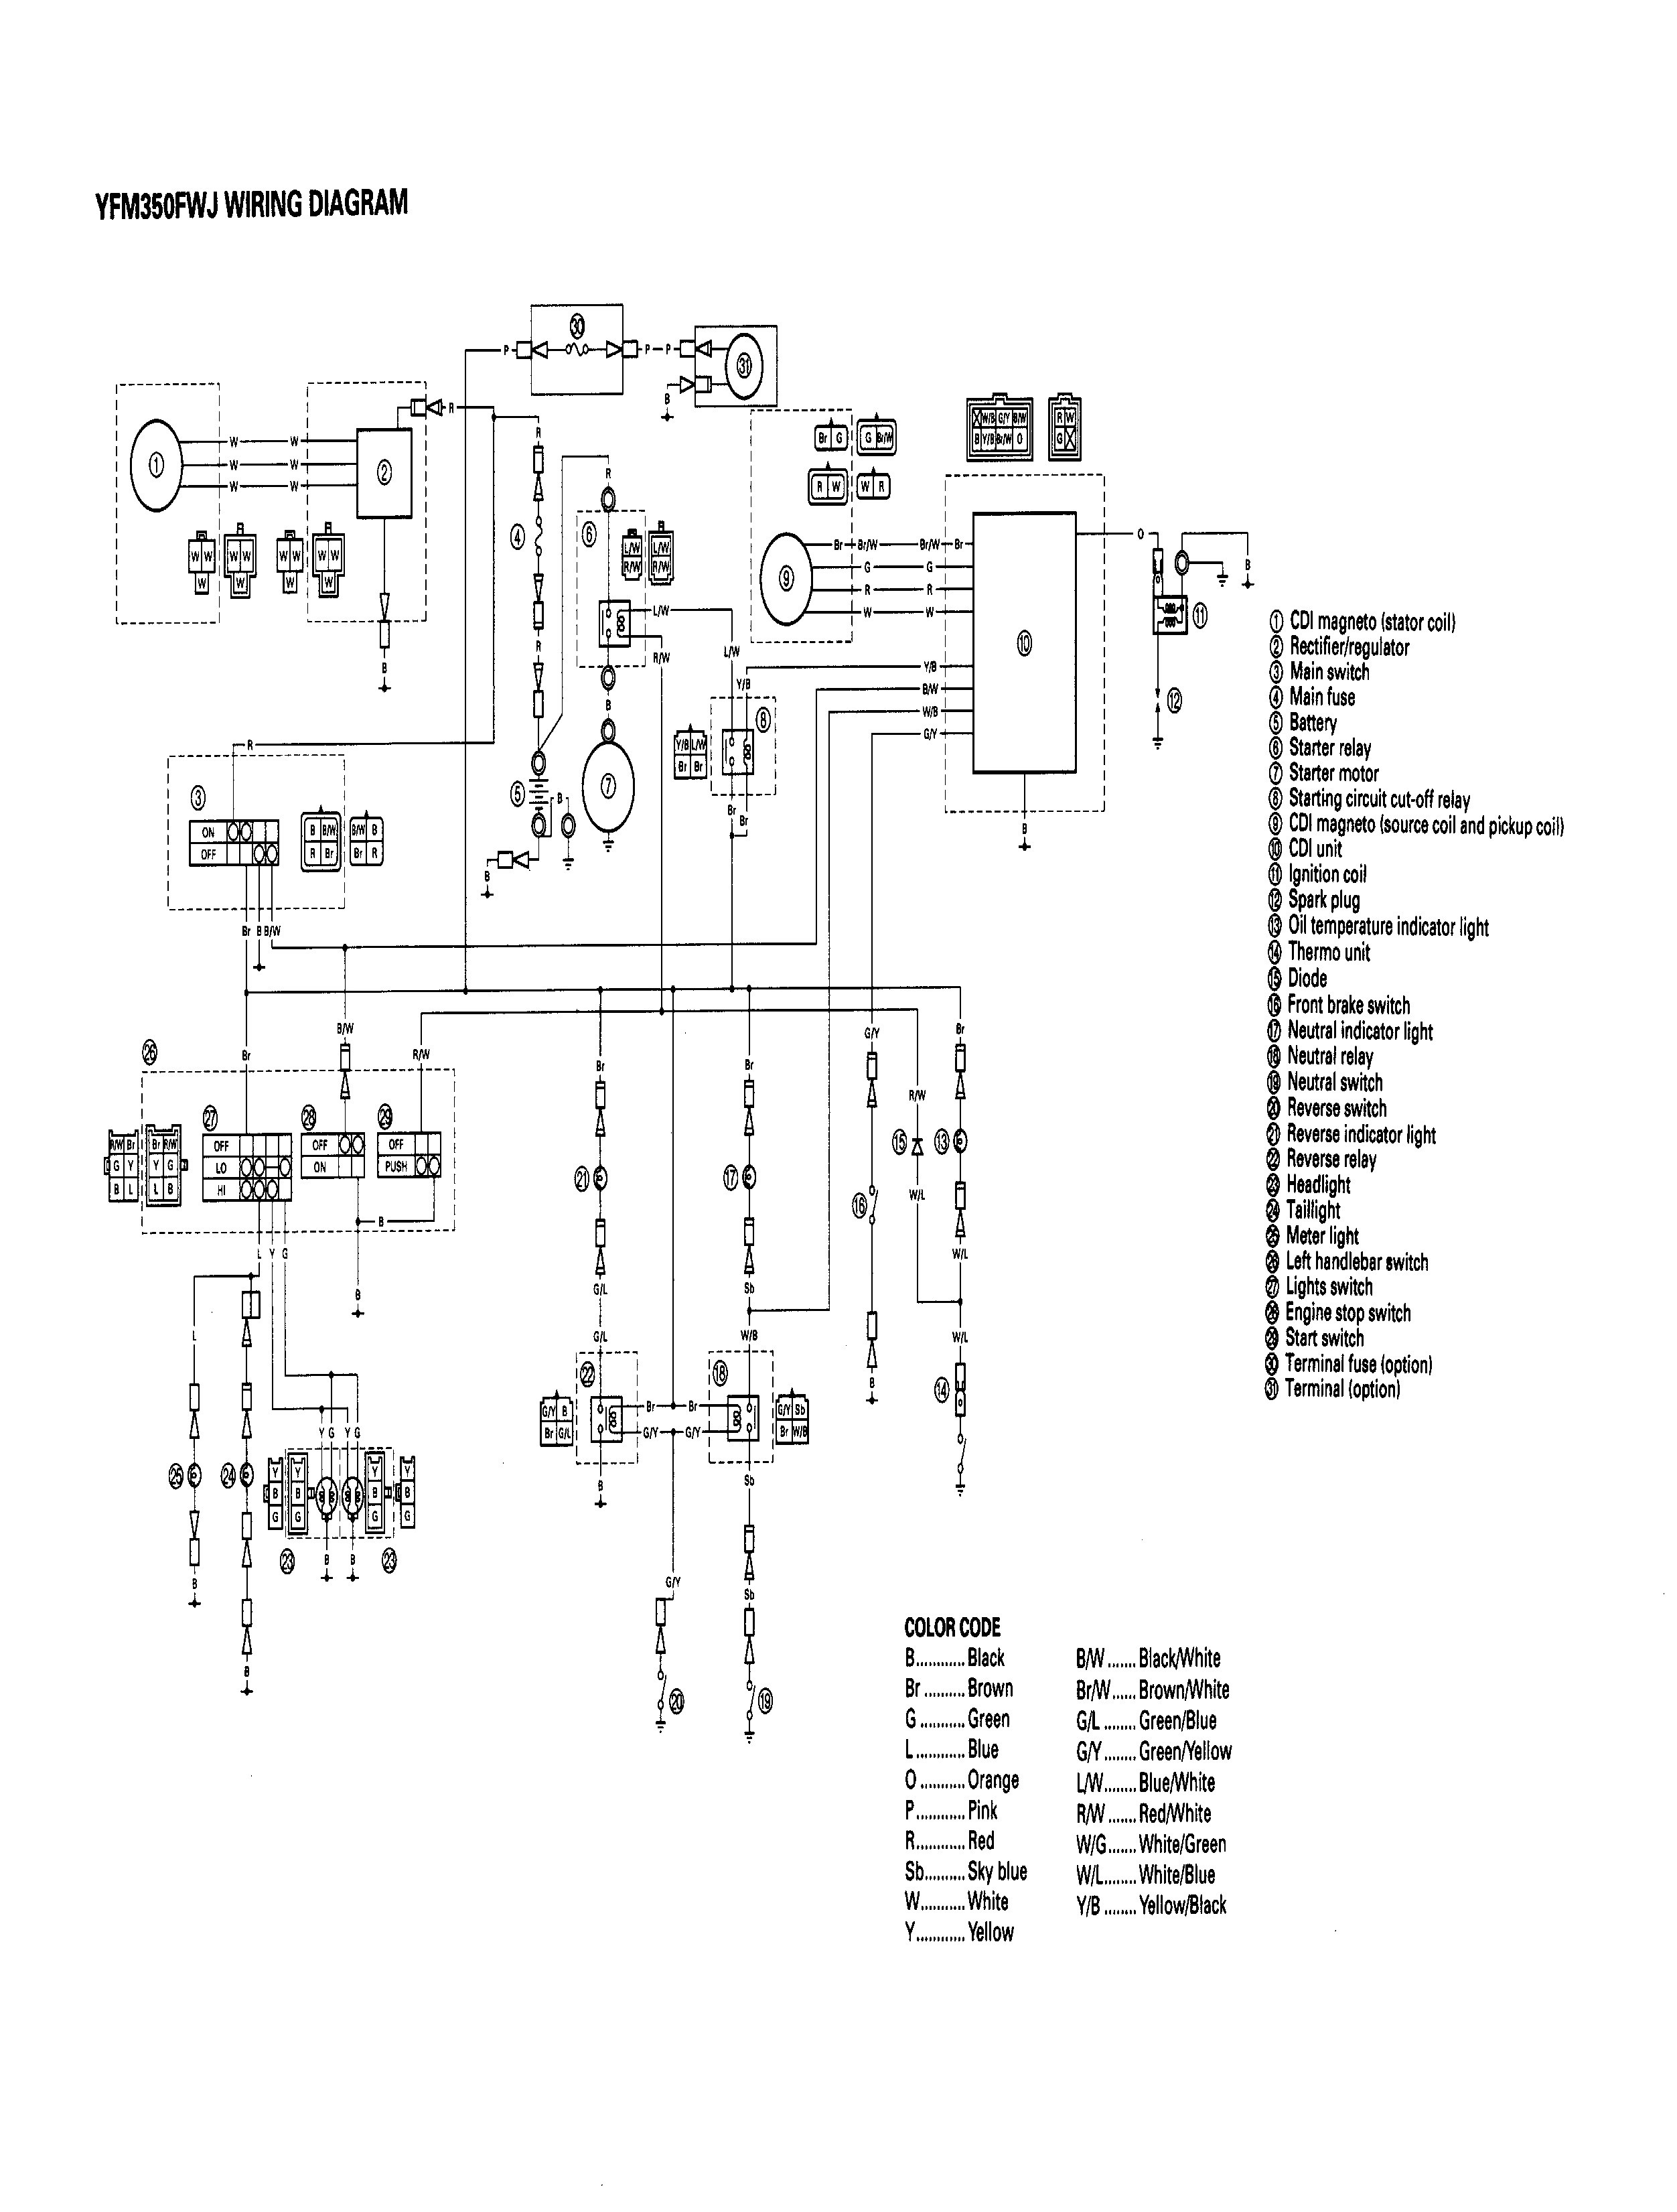 Wiring Diagram Big Bear X on irs 30 zillas, irs high lifter, 6 inch lift, 4x4 pull starter, oil change,